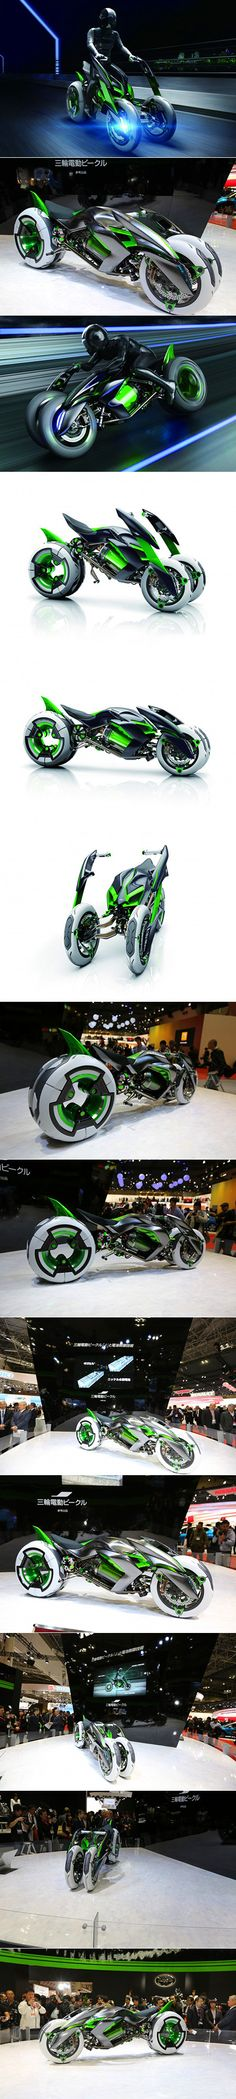 "Kawasaki threw another fascinating oddity into the ring at the Tokyo Motor Show with the unveiling of the outlandish, shape-shifting ""J"" 3-wheel electric vehicle concept."